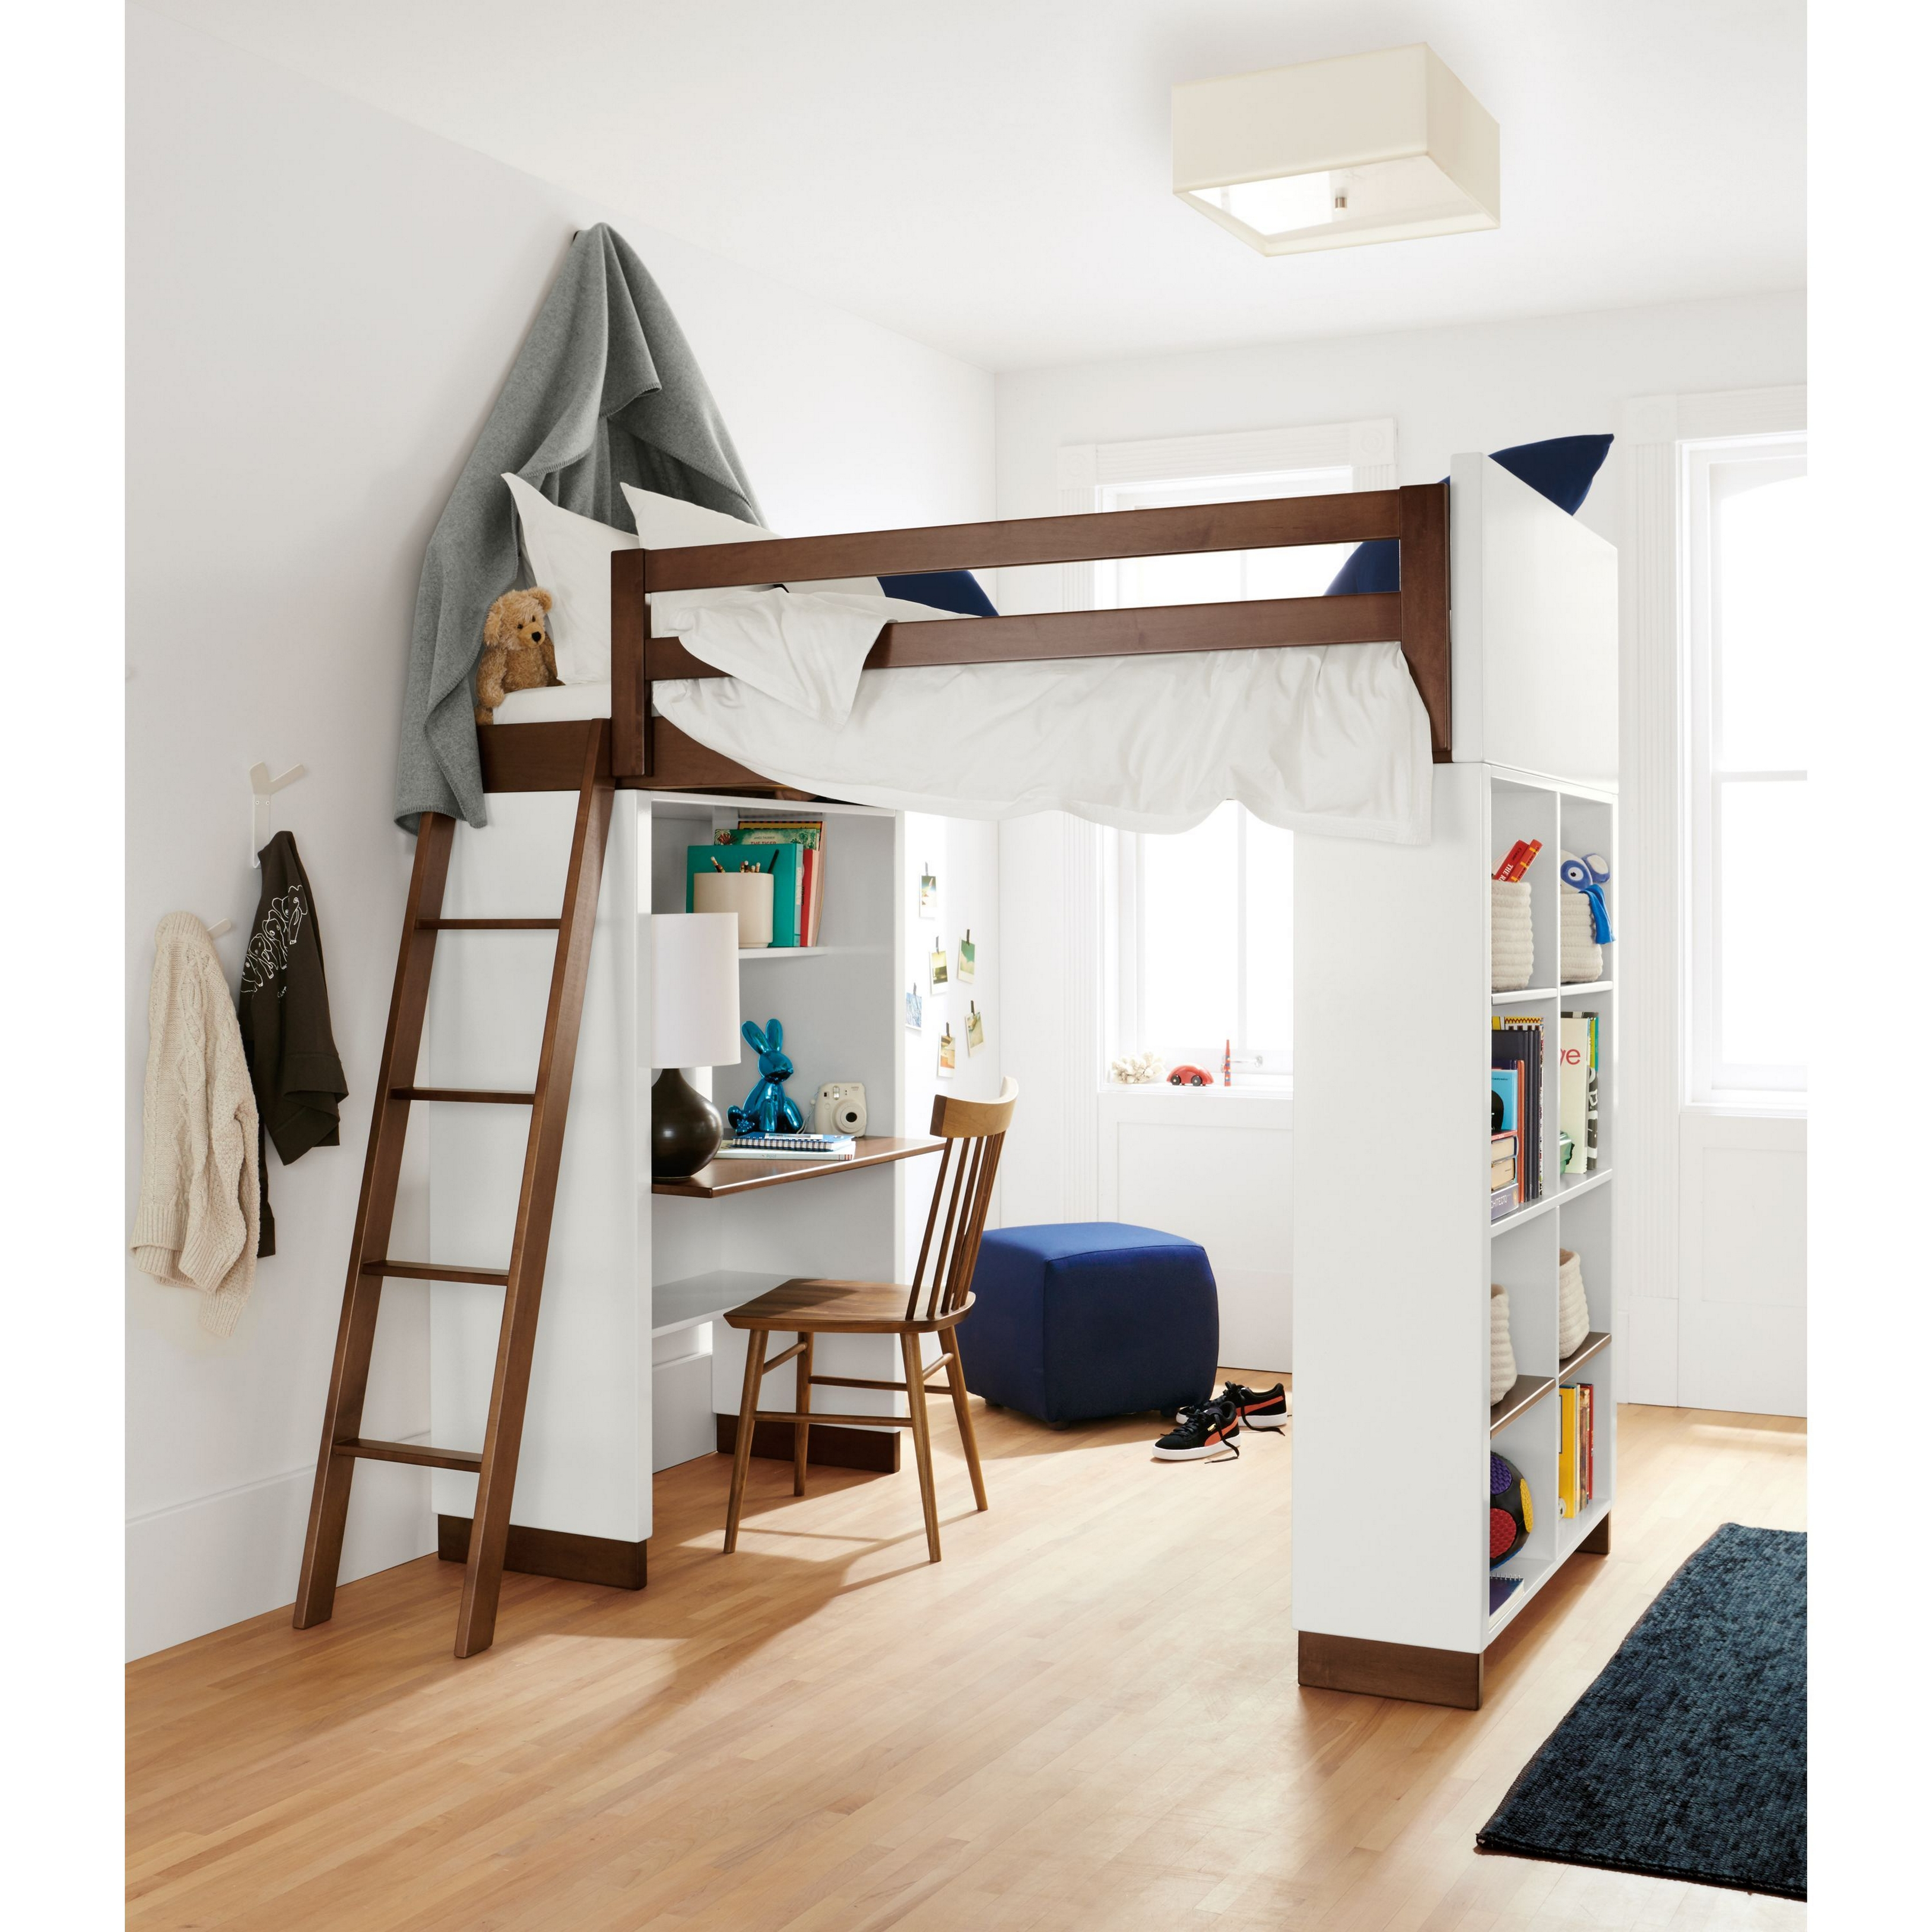 30+ Bunk Beds Design Ideas With Desk Areas Help To Make Compact Bedrooms Bigger 22